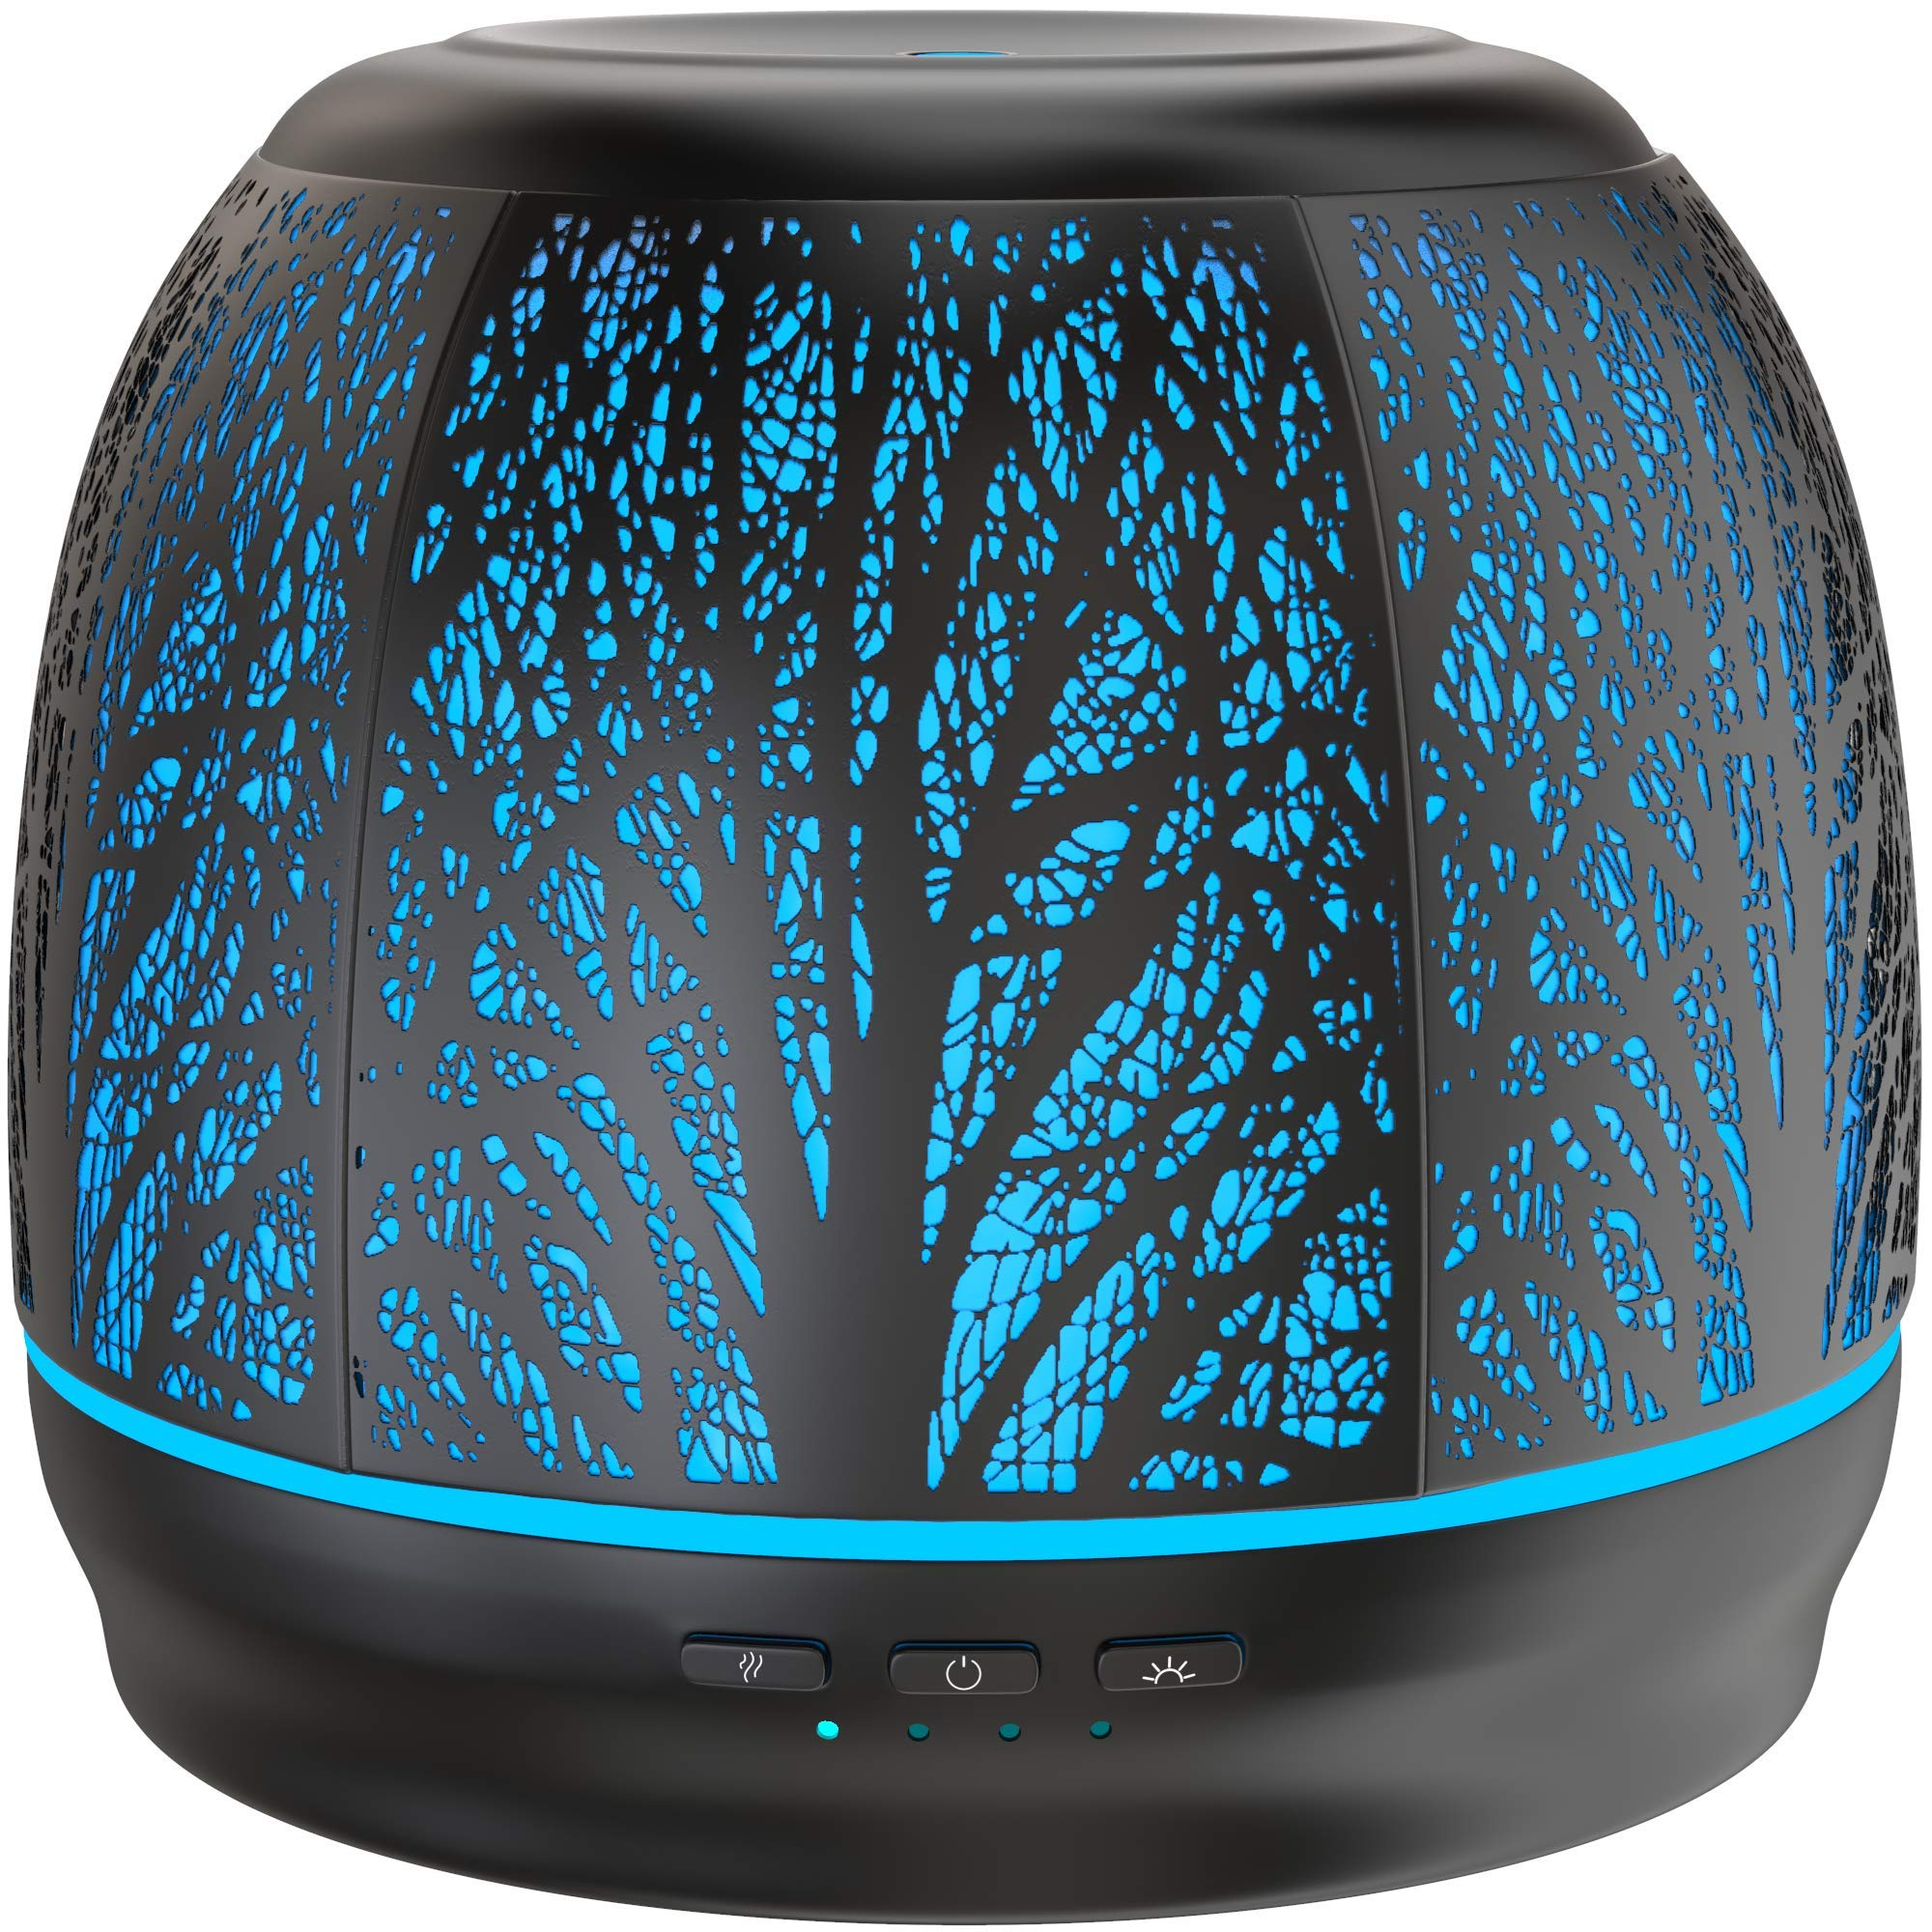 Best Rated Diffusers for Essential Oils, Premium Iron Aromatherapy Diffuser with Large 500mL Water Tank for Home, Office, Kitchen, Baby Room Air Oil Ultrasonic Humidifier with 7 Color LED Lights by Aroma Outfitters